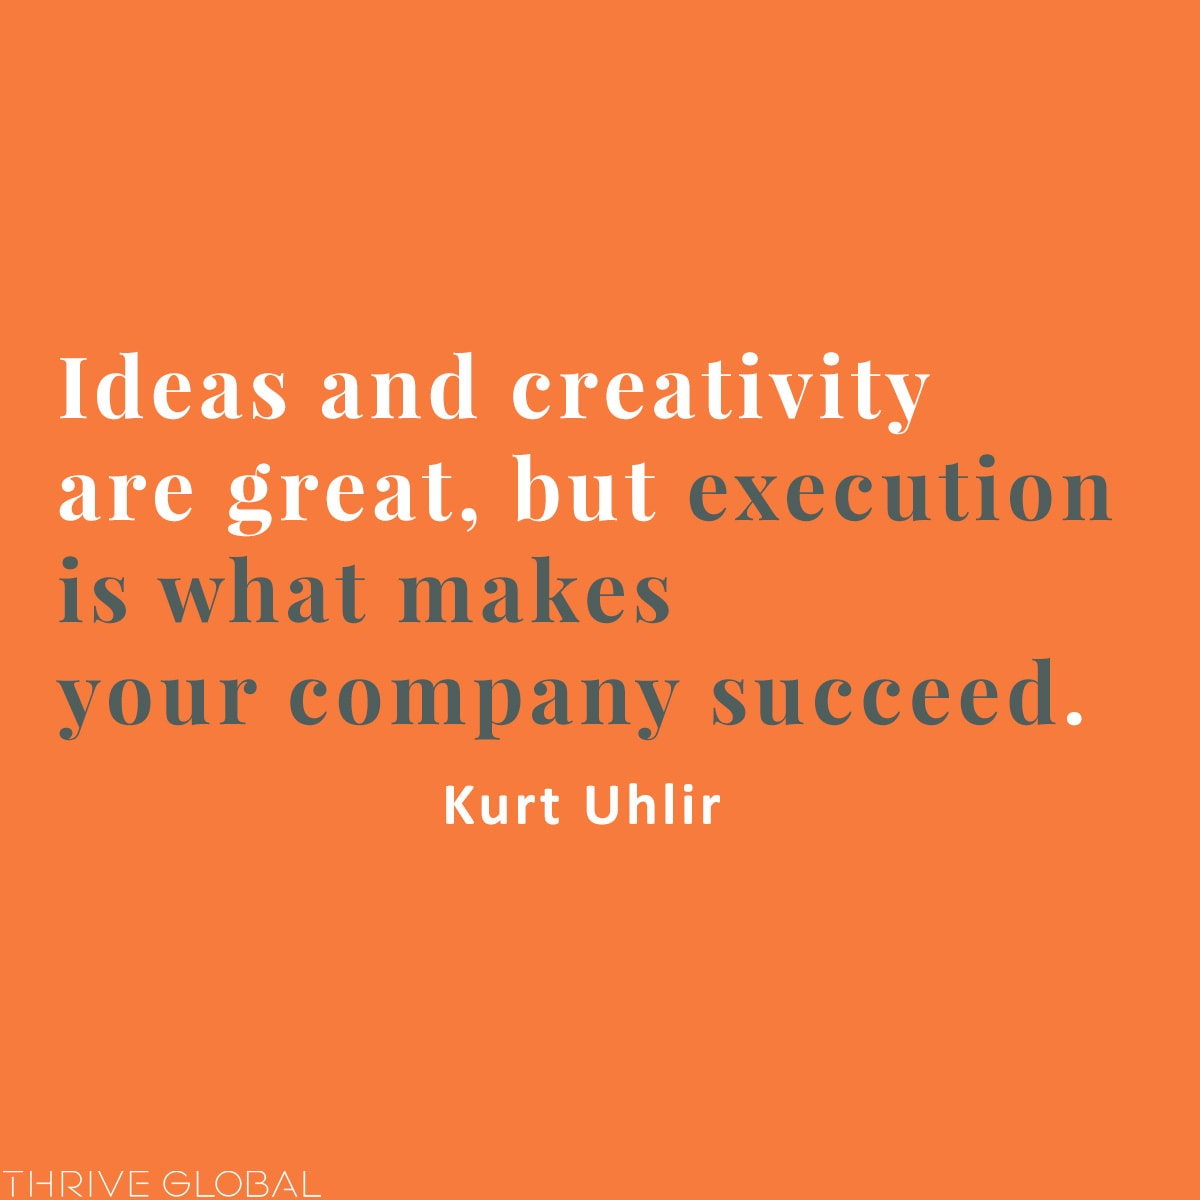 Ideas and creativity are great, but execution is what makes your company succeed.